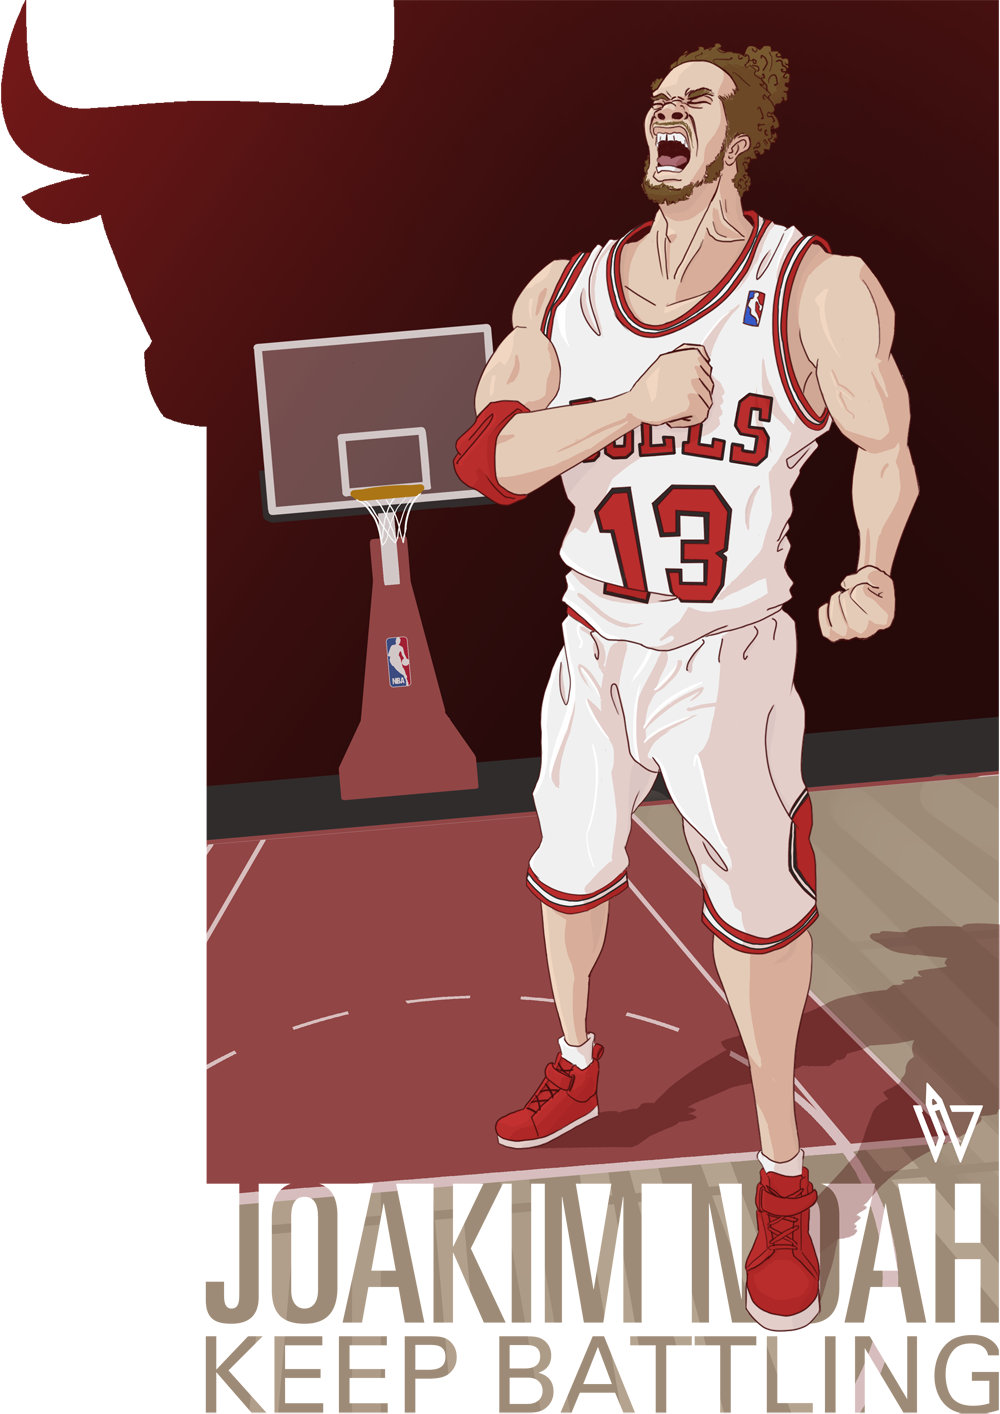 JOAKIM NOAH - KEEP BATTLINGThe first of a series of illustrations inspired by the NBA basketball team, the Chicago Bulls, and their 2012-2013 season - their struggles, their adversity; their growth and their triumphs. Though the season may have ended on the 15th May, the Bulls have shown great toughness, resilience and willpower to bring the fight to the other teams. Noah is one of my favourite NBA players - his passion, his strength and his tenacity are all qualities I respect. For me, though he may not be the star of the team, he is the core and vital to this young Chicago Bulls team. That's why he is the first to feature in this series of illustrations. This piece was so long in the making but I'm really pleased with the final result. I love how Noah came out and the general feel of the image. Of course there are areas that could be improved, I need more practice with hands and I need to learn more about muscle structure… oh and clothing. But the biggest thing is still backgrounds. Again I'm happy with the overall outcome but the background is a it… blah. Haa.So yeah, this is my first piece in tribute to my team, the Chicago Bulls. I've got ideas for the next couple of illustrations in the series but I'm going to have to put it on hold for a bit; have some other things and projects I need to work on.Right, it's going on 4:00am here… I best be getting some kip.